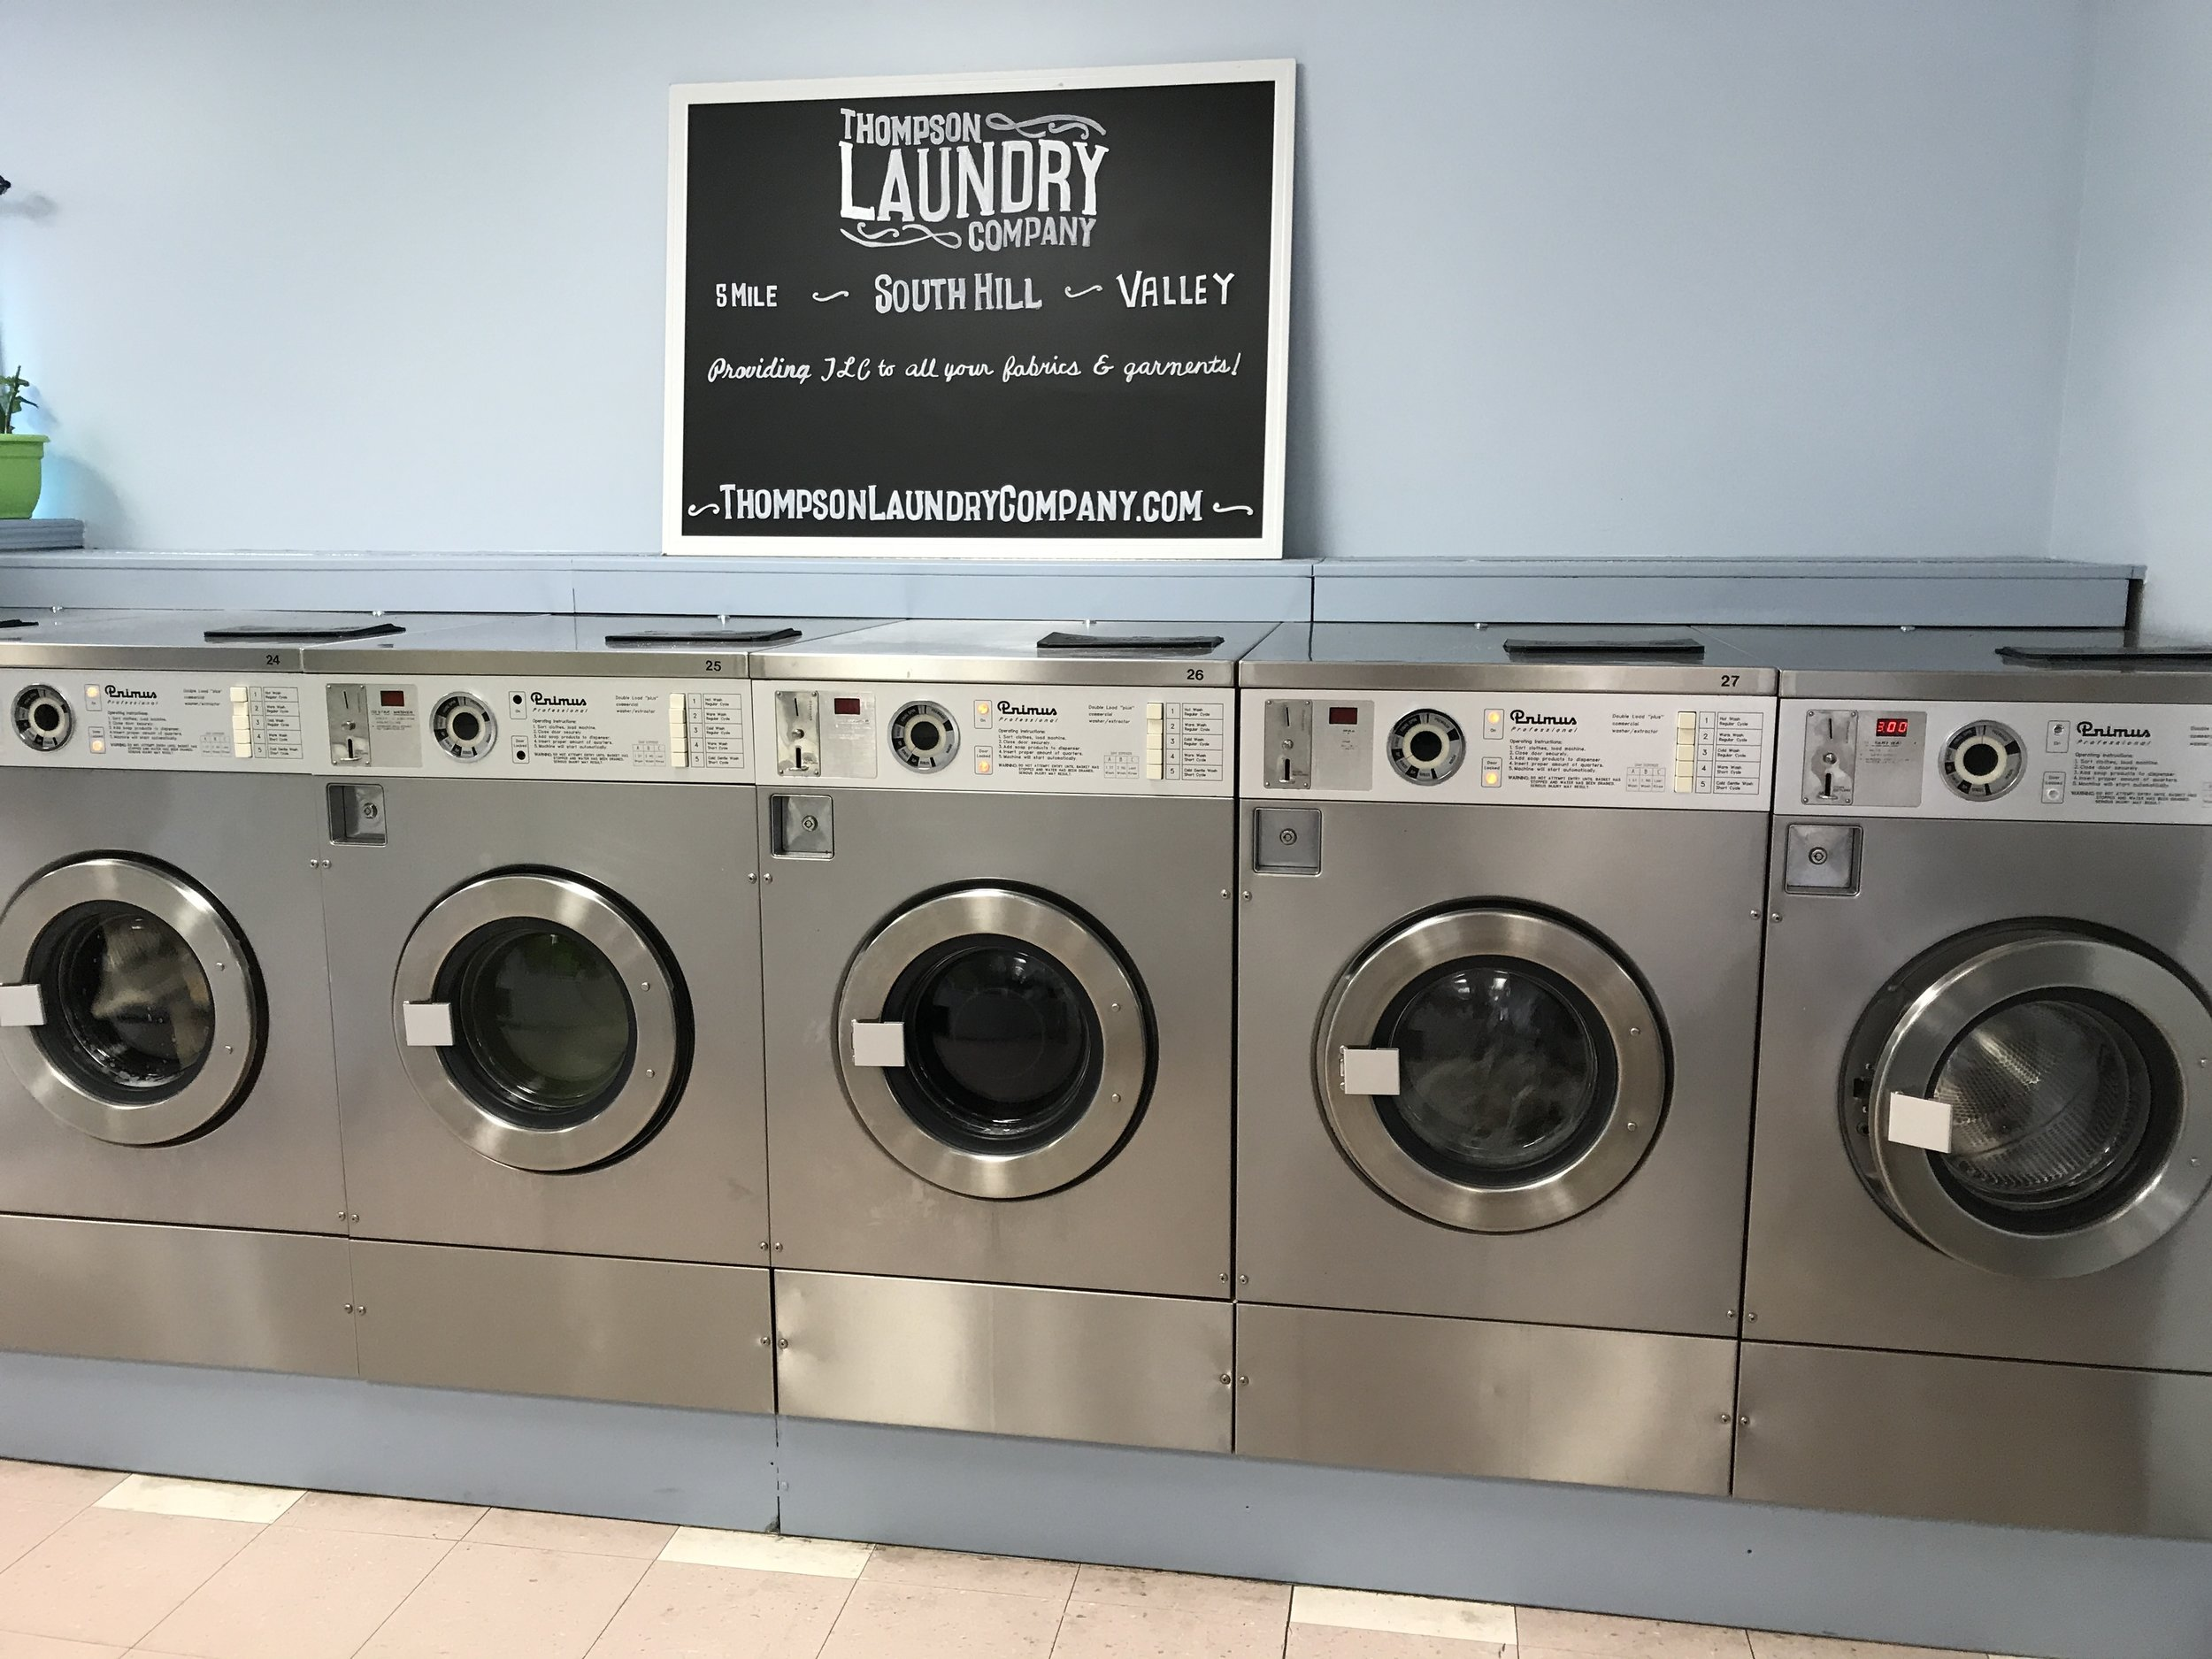 Plenty of top load and front load machines and dryers of all sizes.